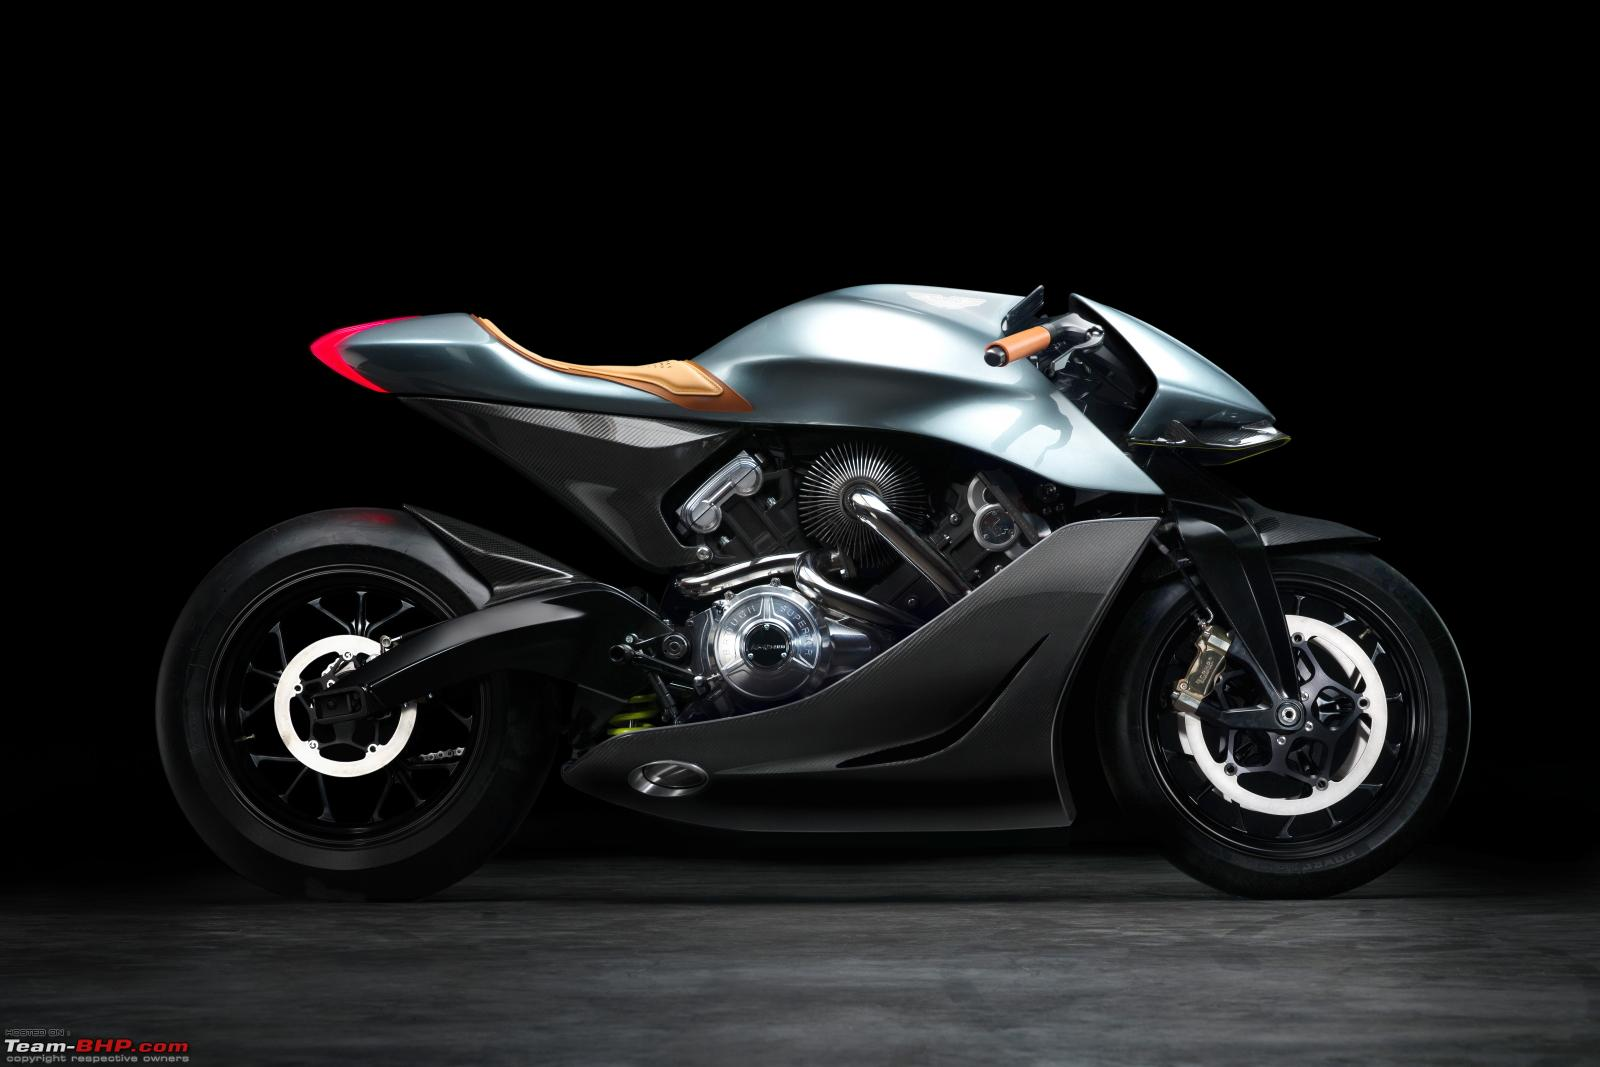 EICMA 2019: Aston Martin debuts its first motorcycle - AMB